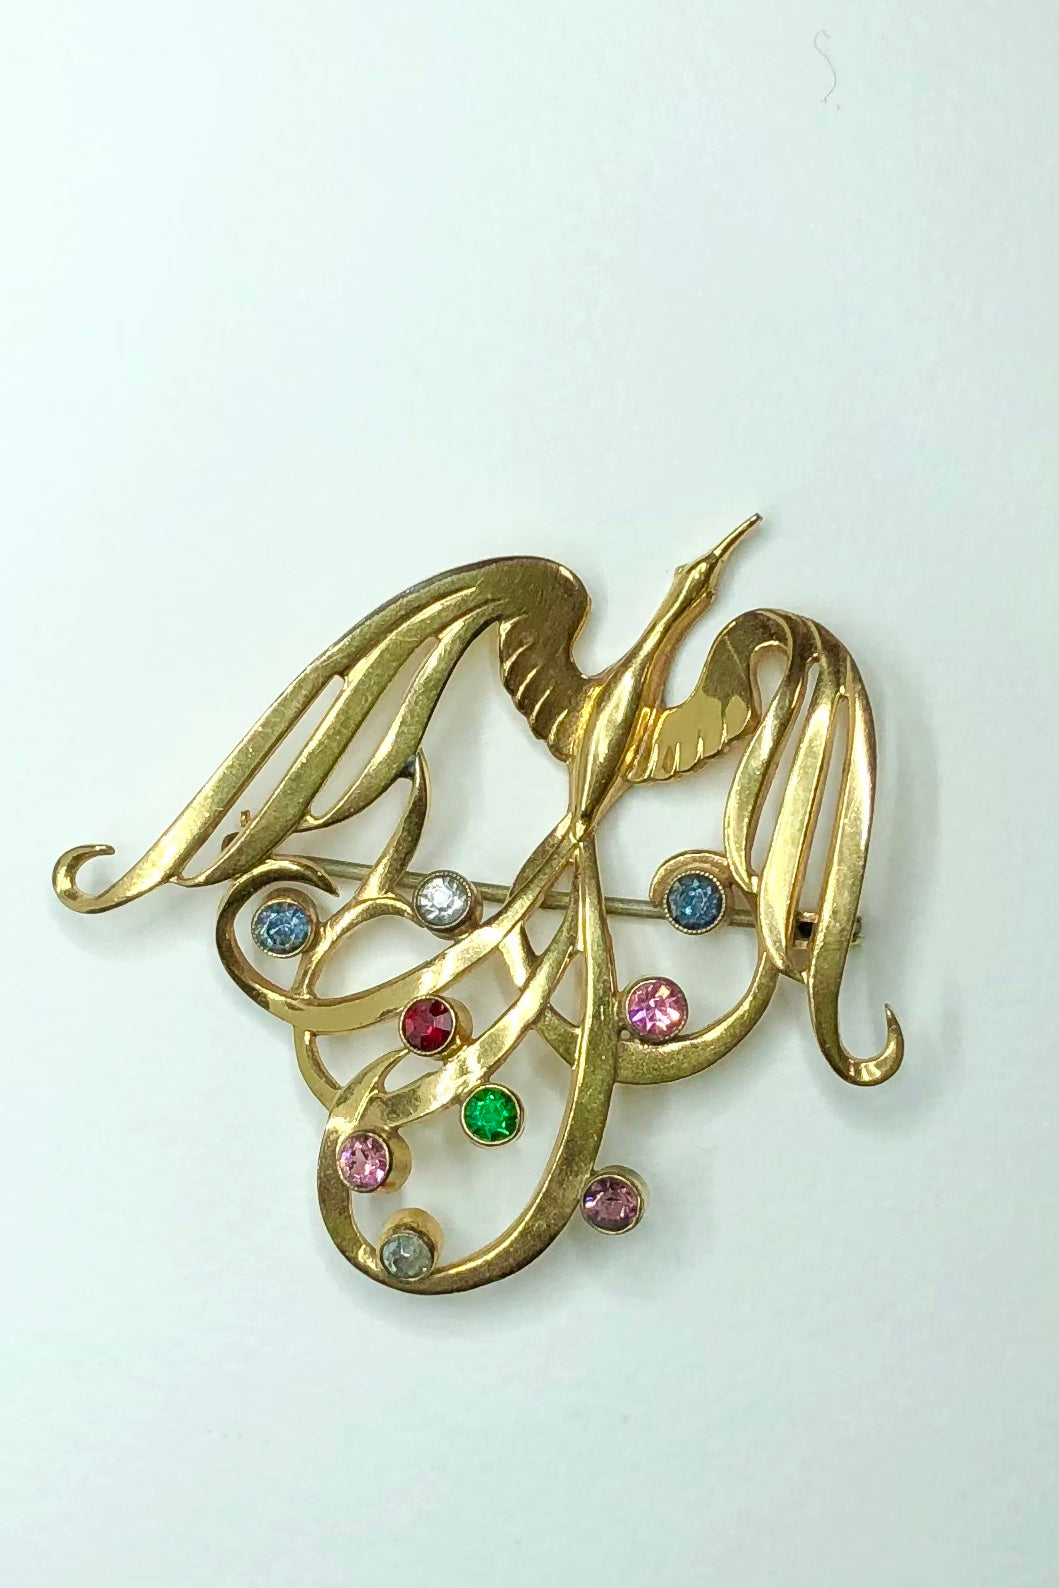 A spectacular jeweled bird brooch, trailing tail feathers adorned with multi coloured crystals. Retro could be 1950's.